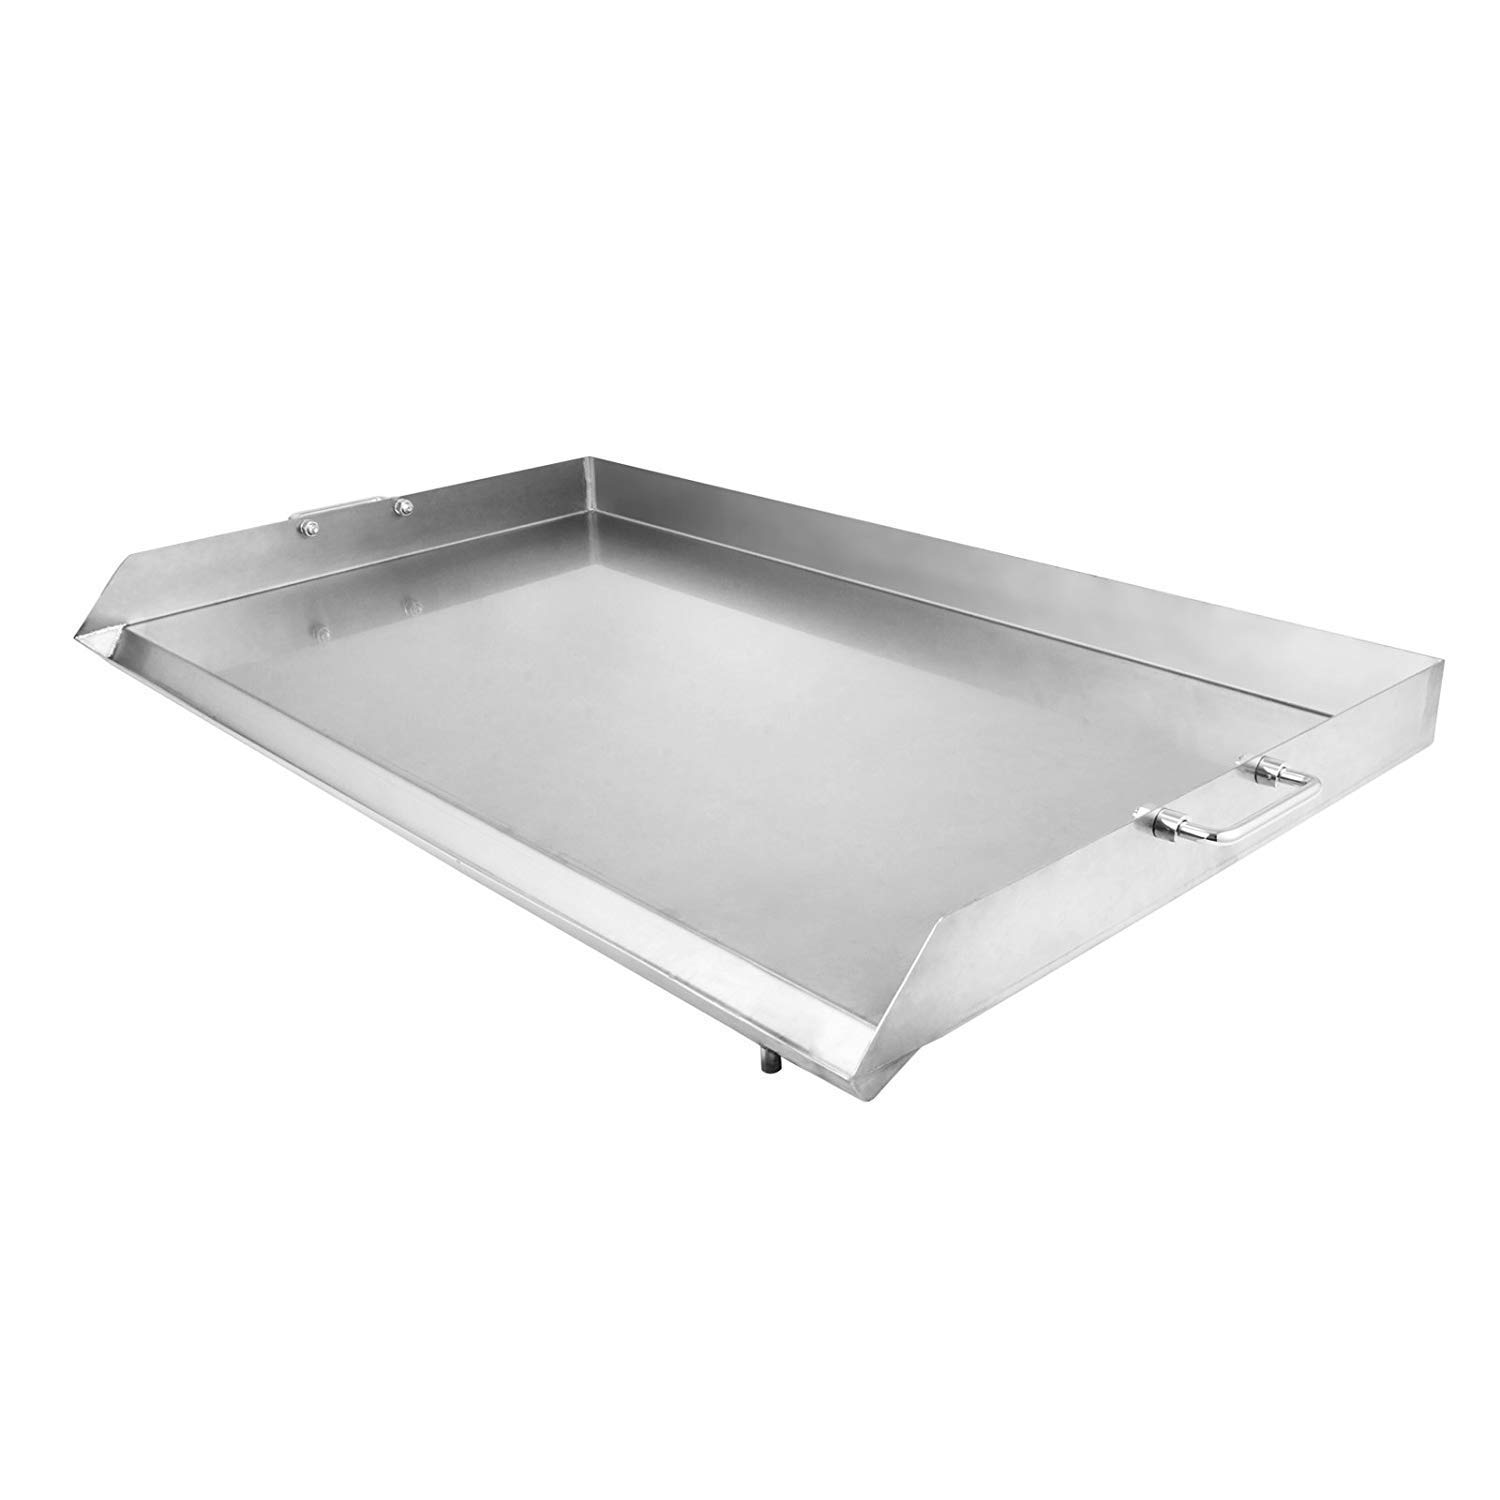 VEVOR Universal Flat Top 36'' x 22'' Griddle for BBQ Grills Stainless Steel Non-Stick Burner with Removable Handles